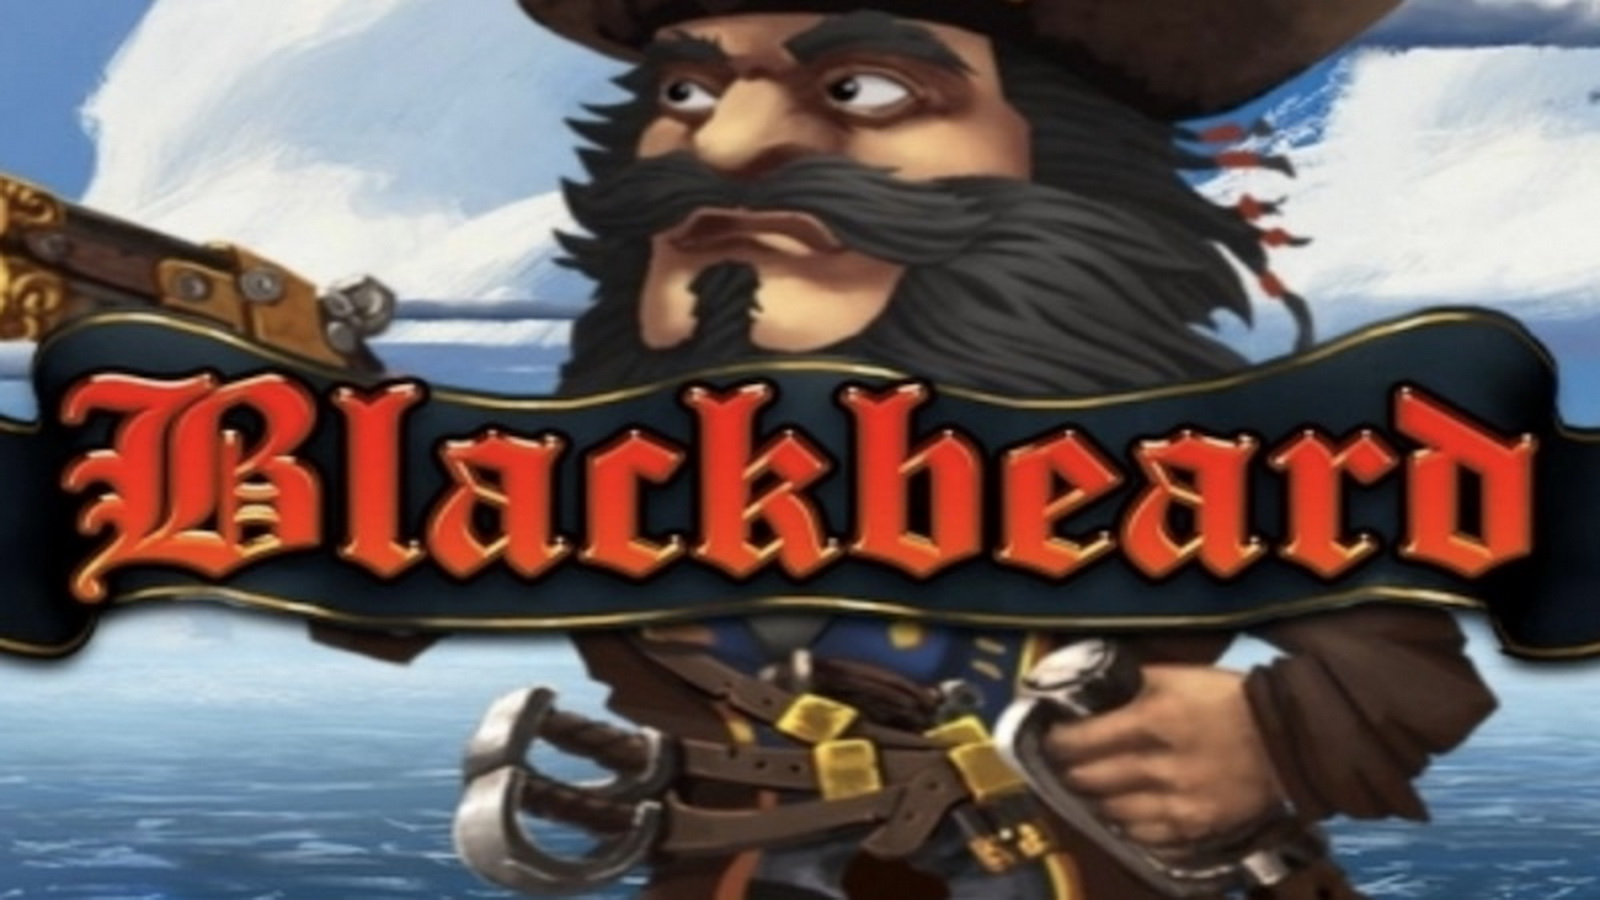 Se Blackbeard (Bulletproof Games) Online Slot Demo Game, Bulletproof Games